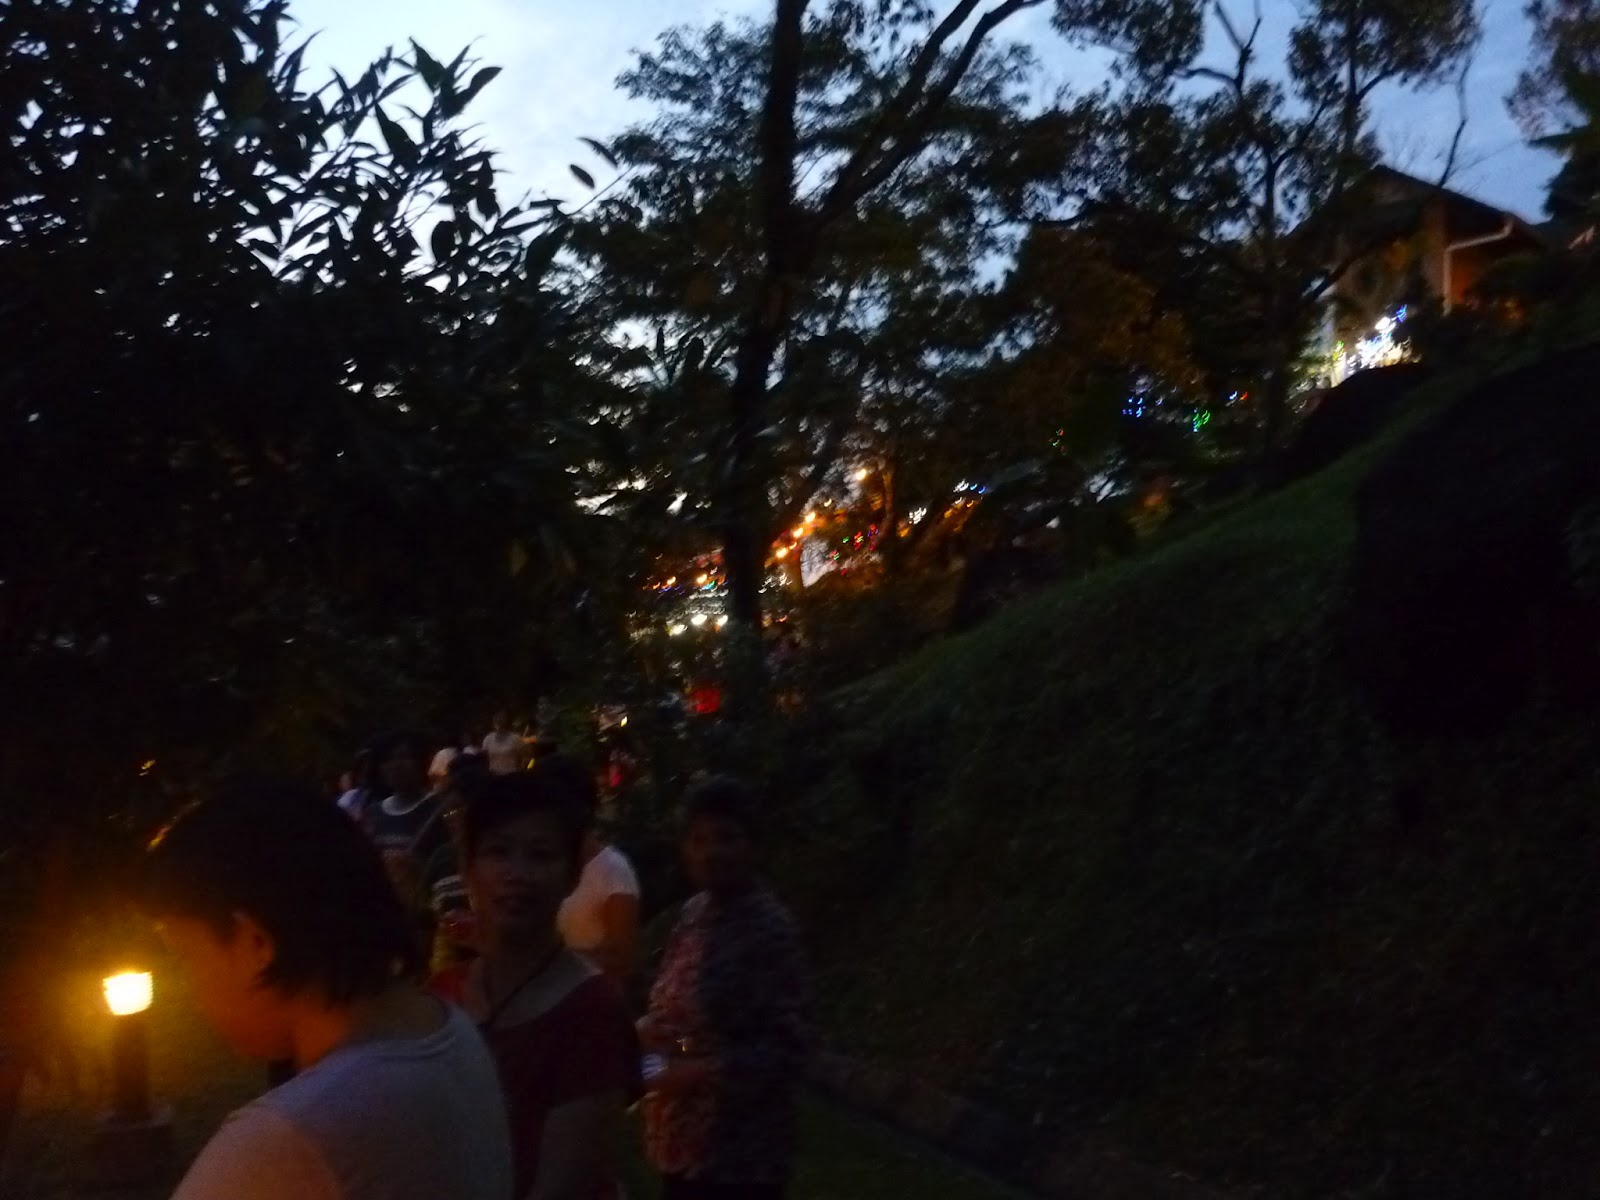 devotees n patrons lining the pathway waiting for the signal to start the giving of light ceremony